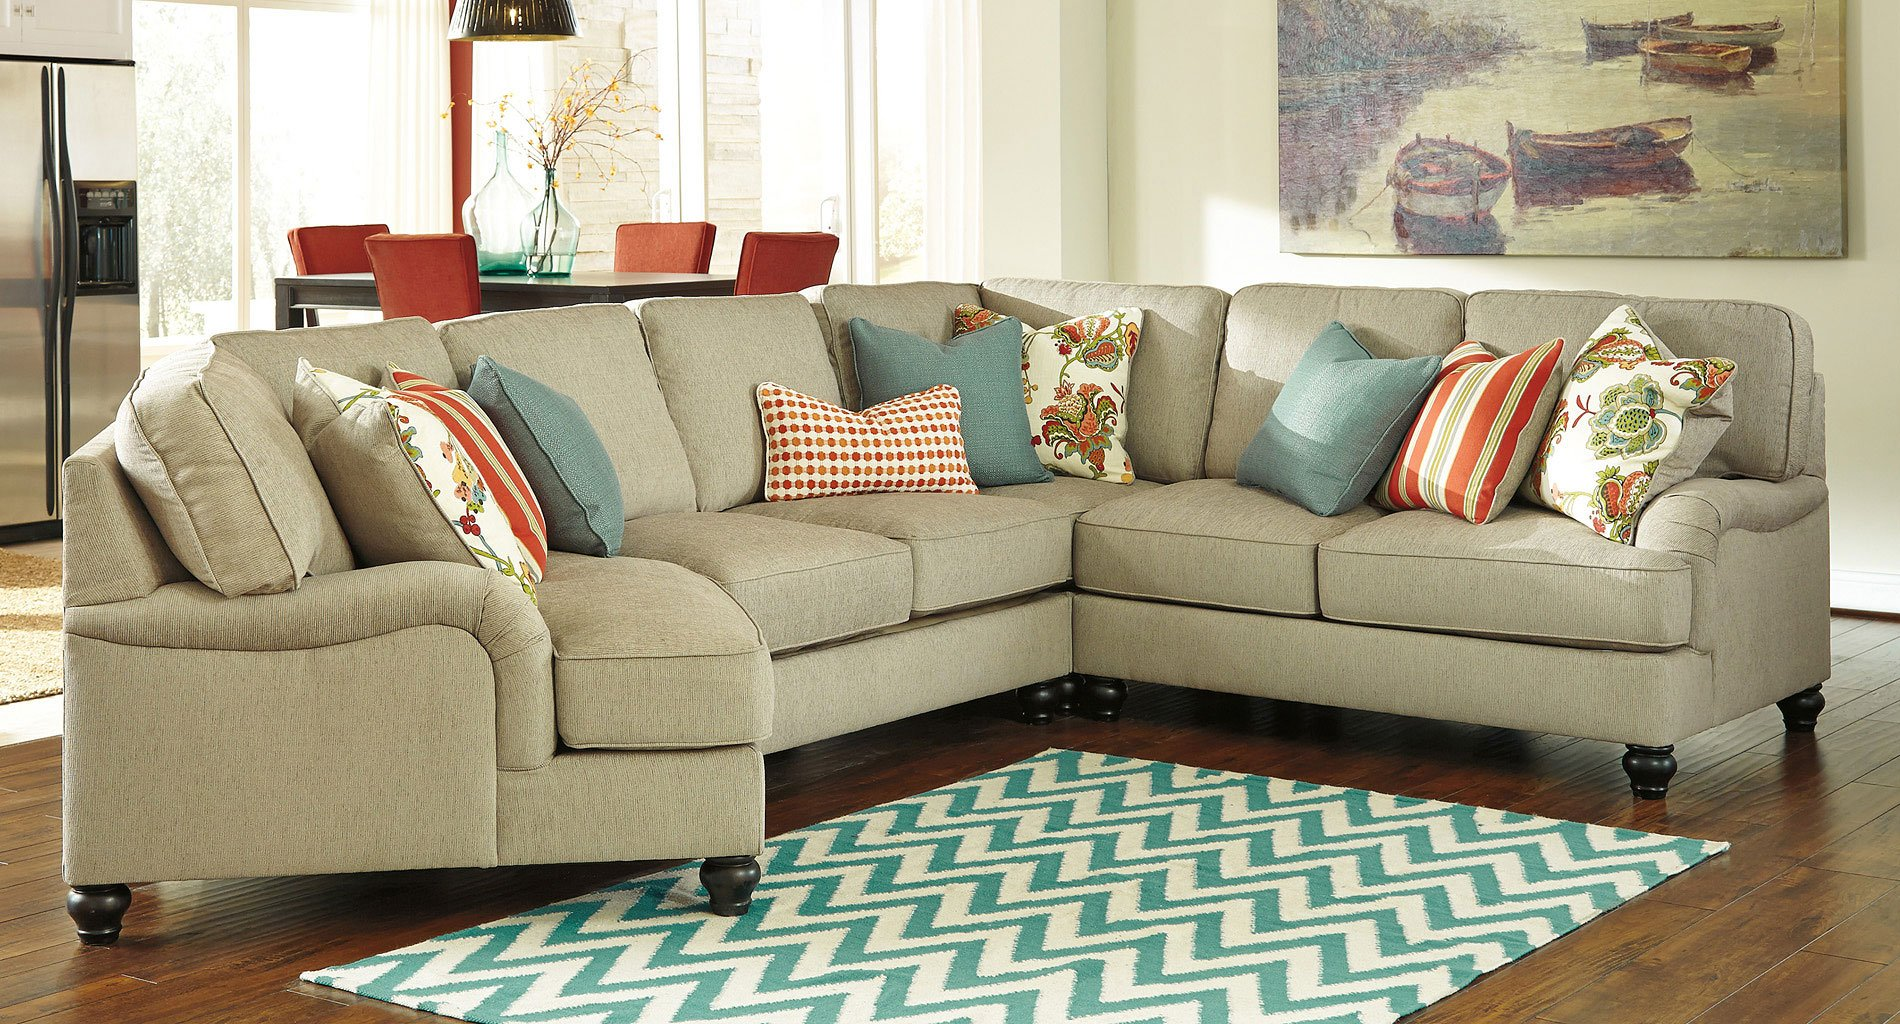 Charmant Kerridon Putty Modular Sectional W/ Cuddler